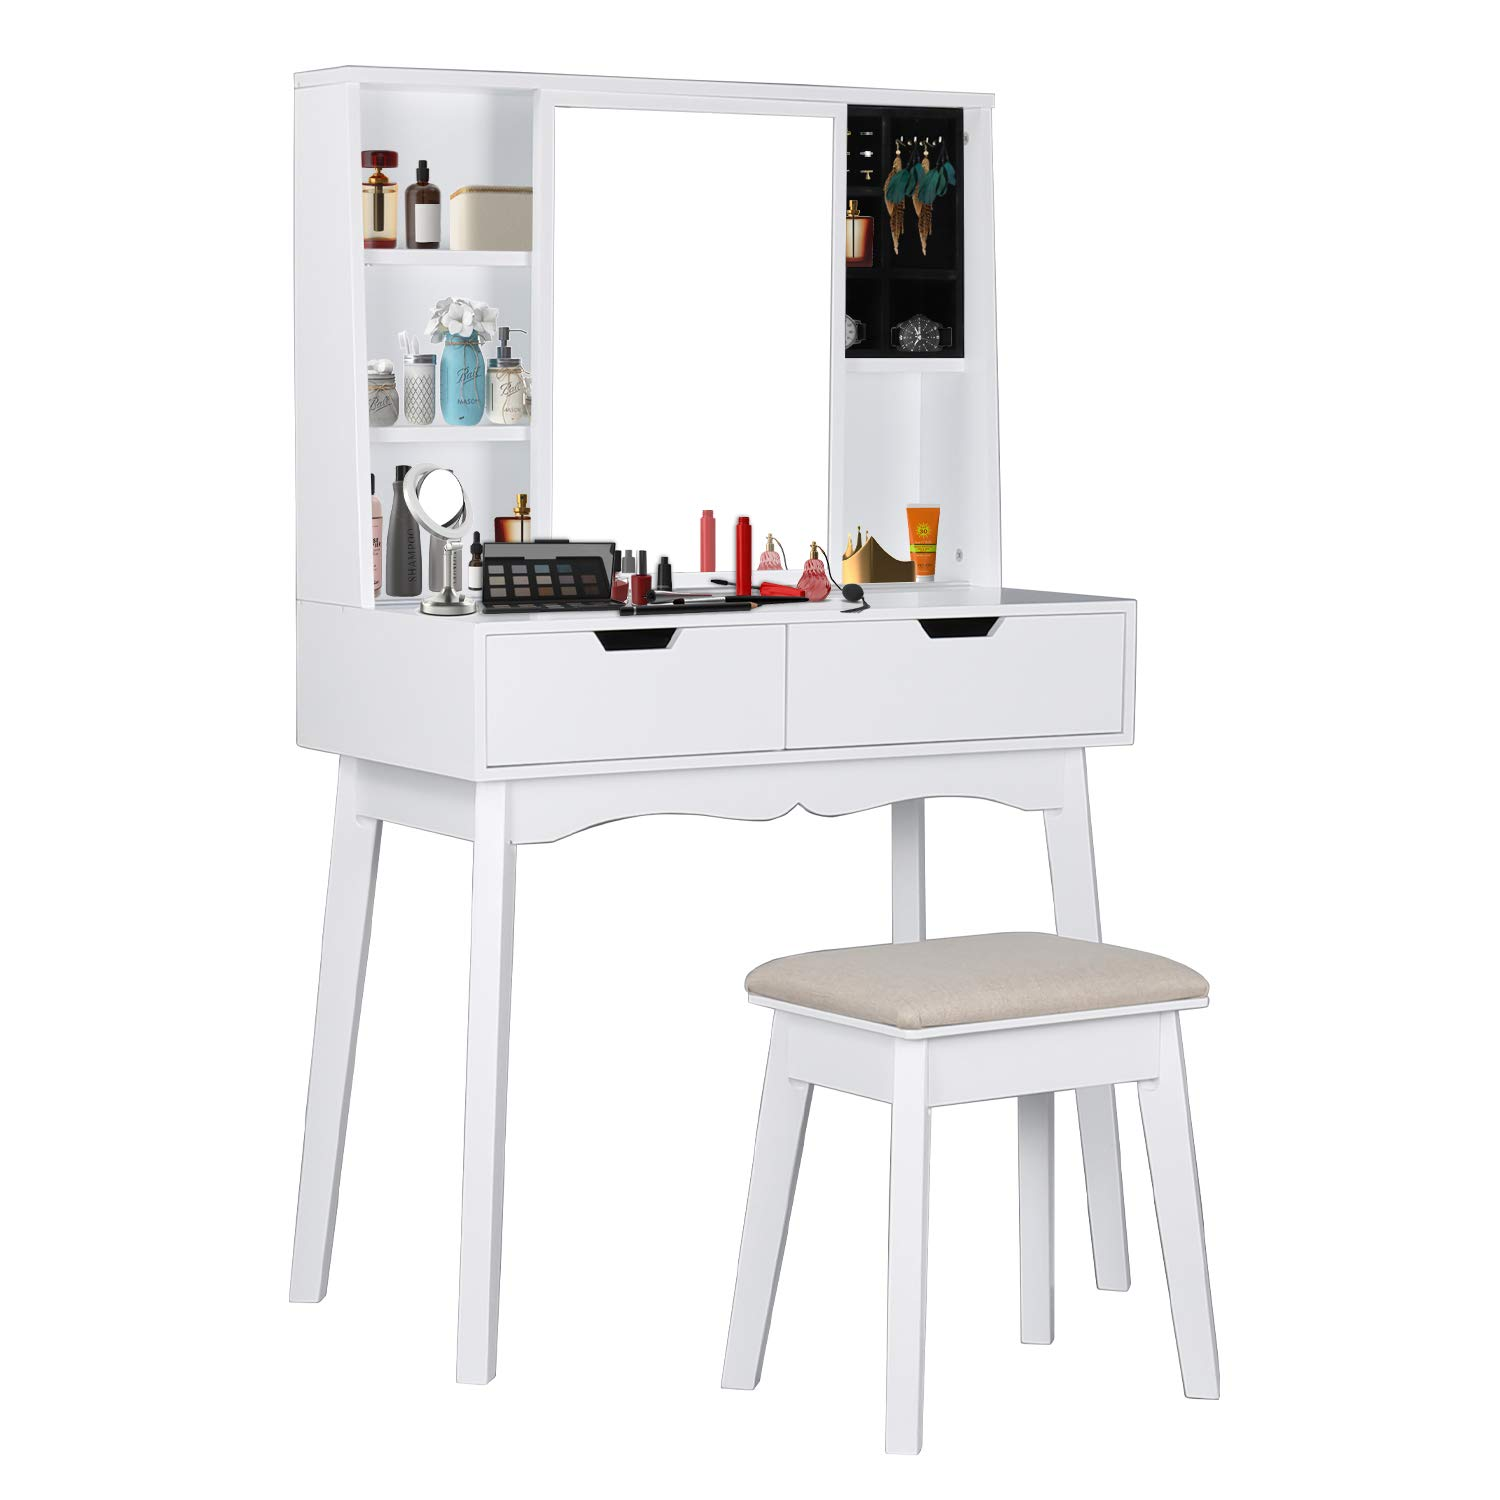 COZUHAUSE Vanity Table Set with Movable Mirror, Jewelry Cabinet/Jewelry Wardrobe, Detachable Jewelry Storage Box, Cushioning Stool, 2 Drawer Dressing Table (White)